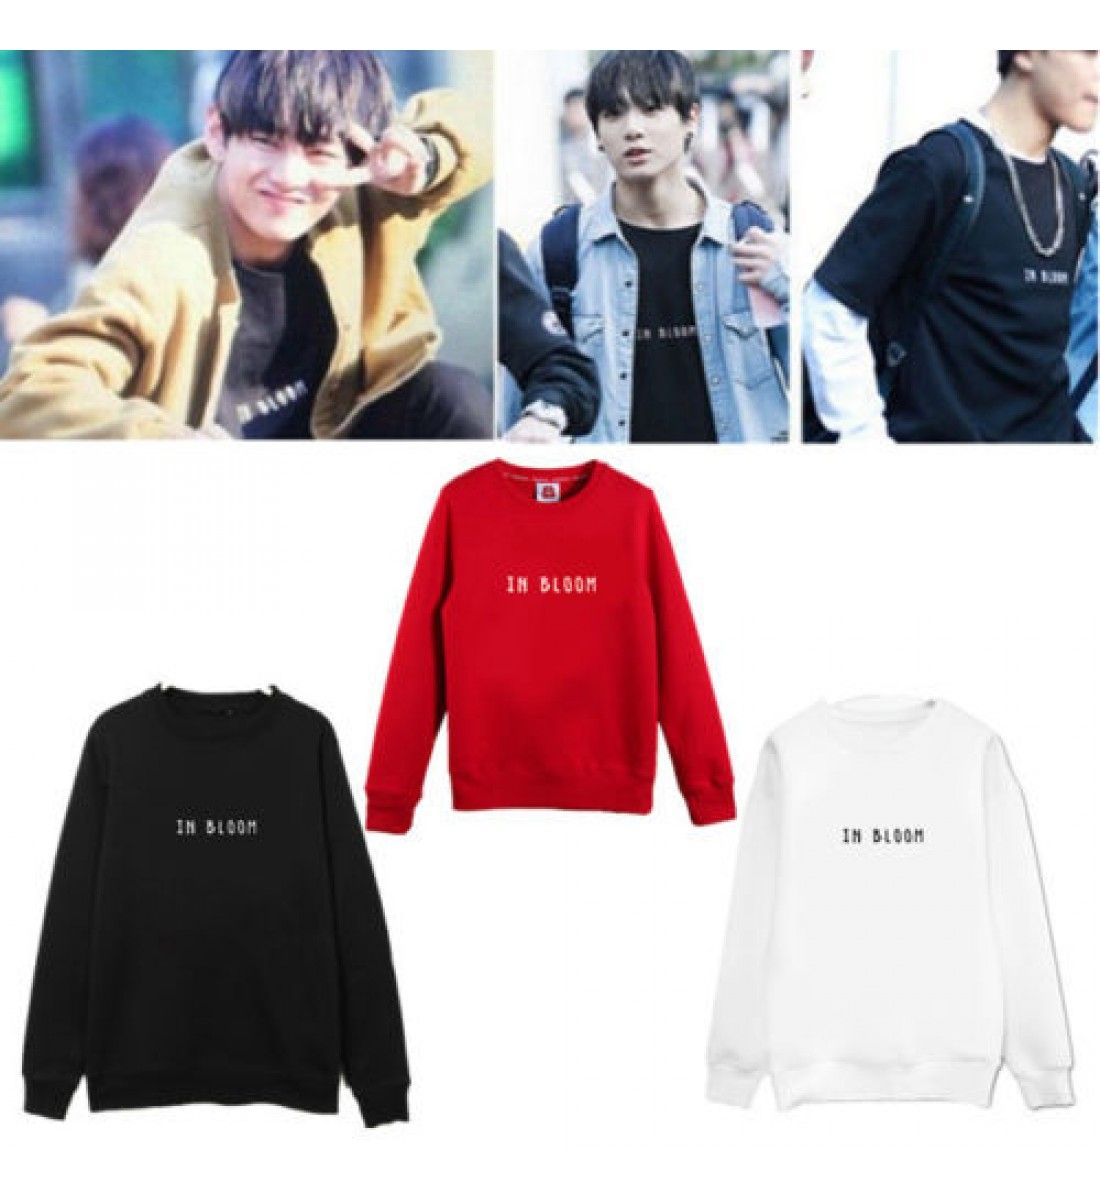 Official Kpop Korea Store Hoodie Kpop Cloth Women Hoodies Sweatshirts Letter Print Hoodie Hoodies Womens